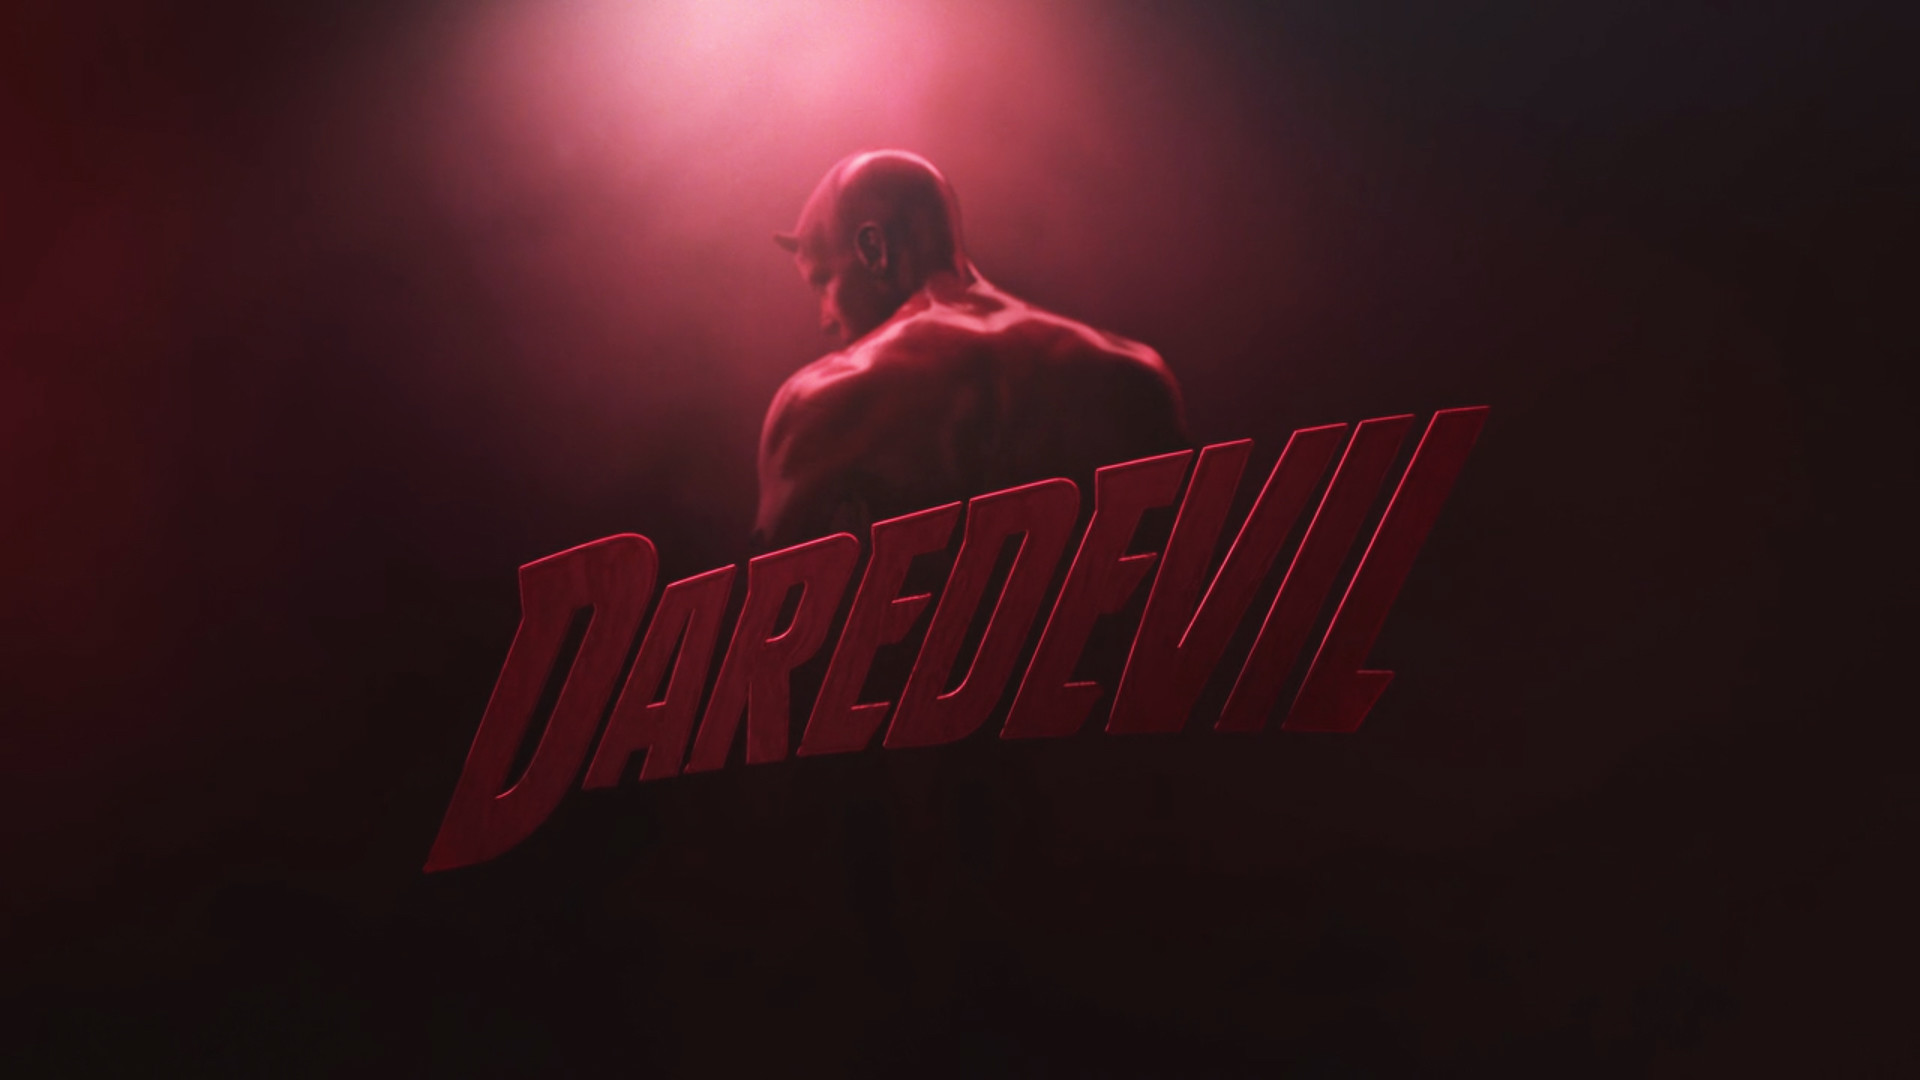 Res: 1920x1080, Daredevil Logo Wallpapers High Quality